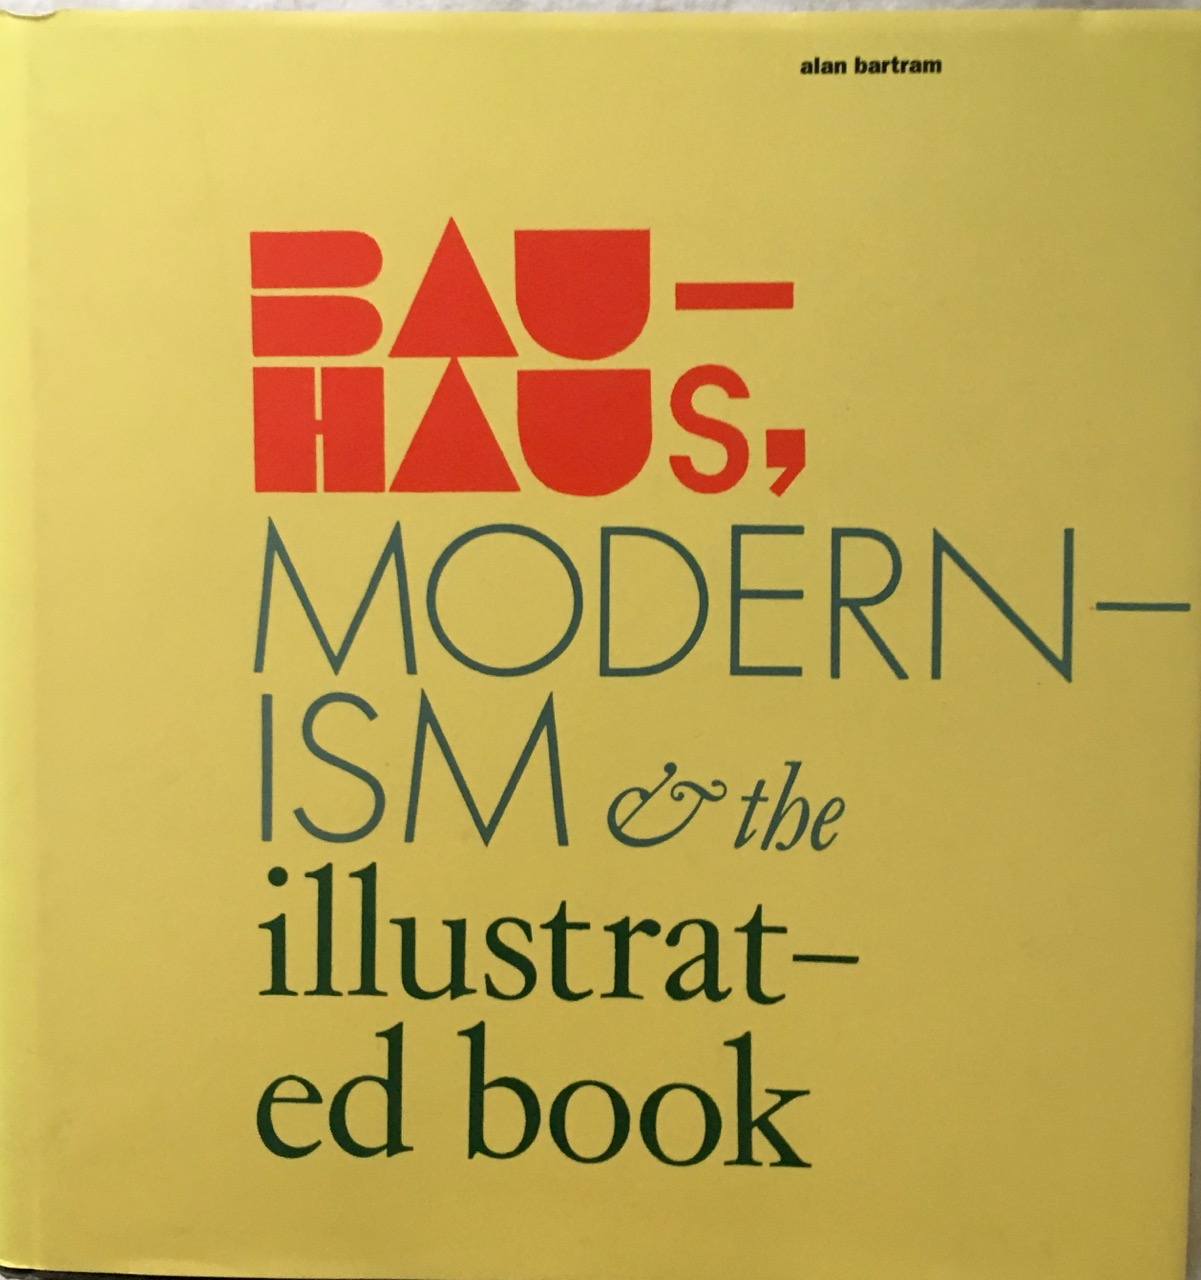 Image for Bauhaus, Modernism, and the Illustrated Book